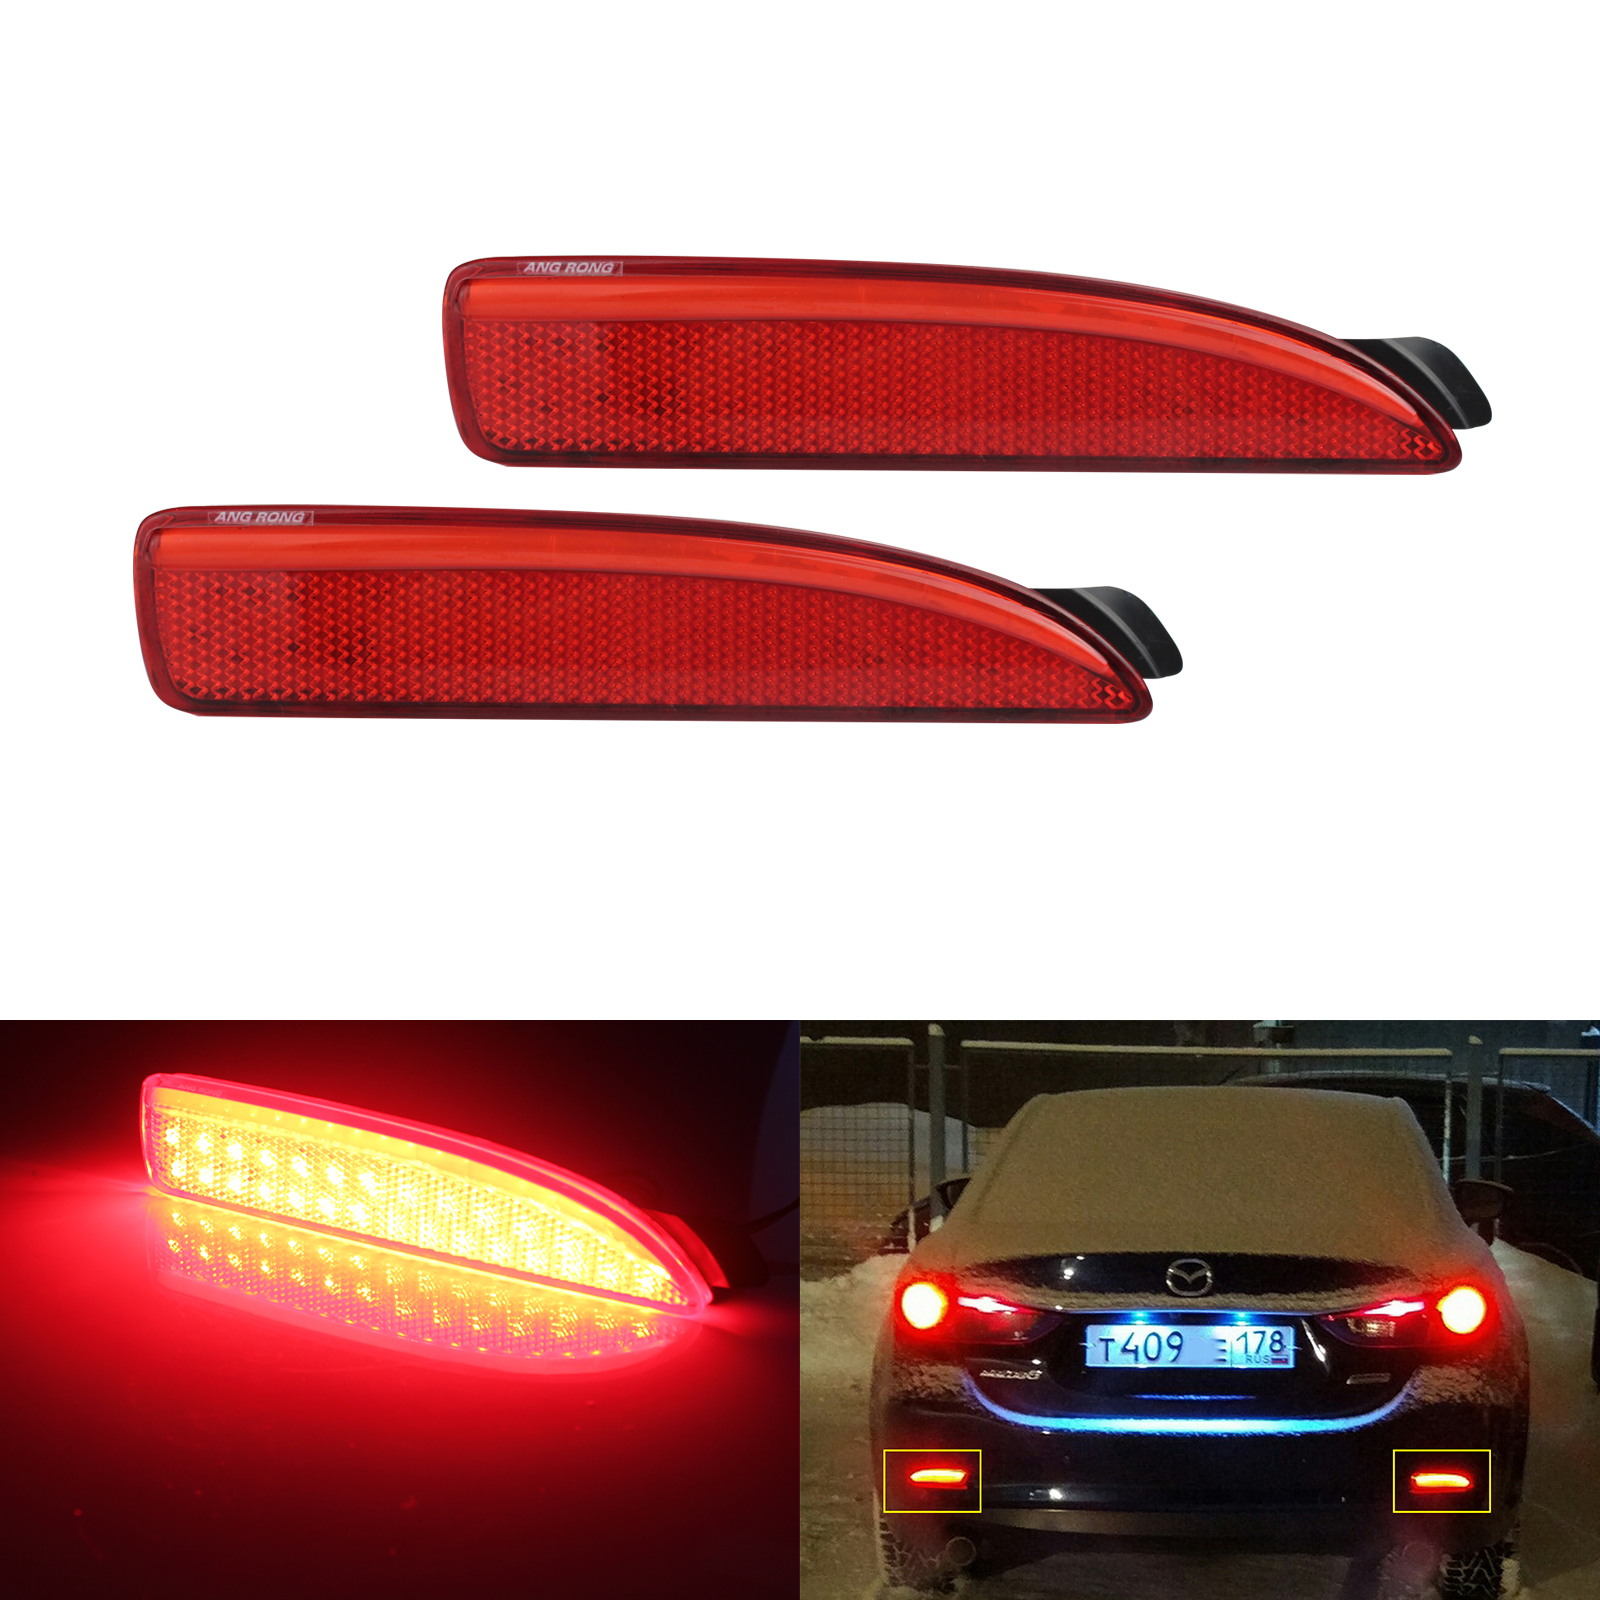 ANGRONG 2x Red Rear Bumper Reflector <font><b>LED</b></font> Tail Stop <font><b>Light</b></font> For <font><b>Mazda</b></font> <font><b>6</b></font> Atenza 2013+ For Mazda3 4D image